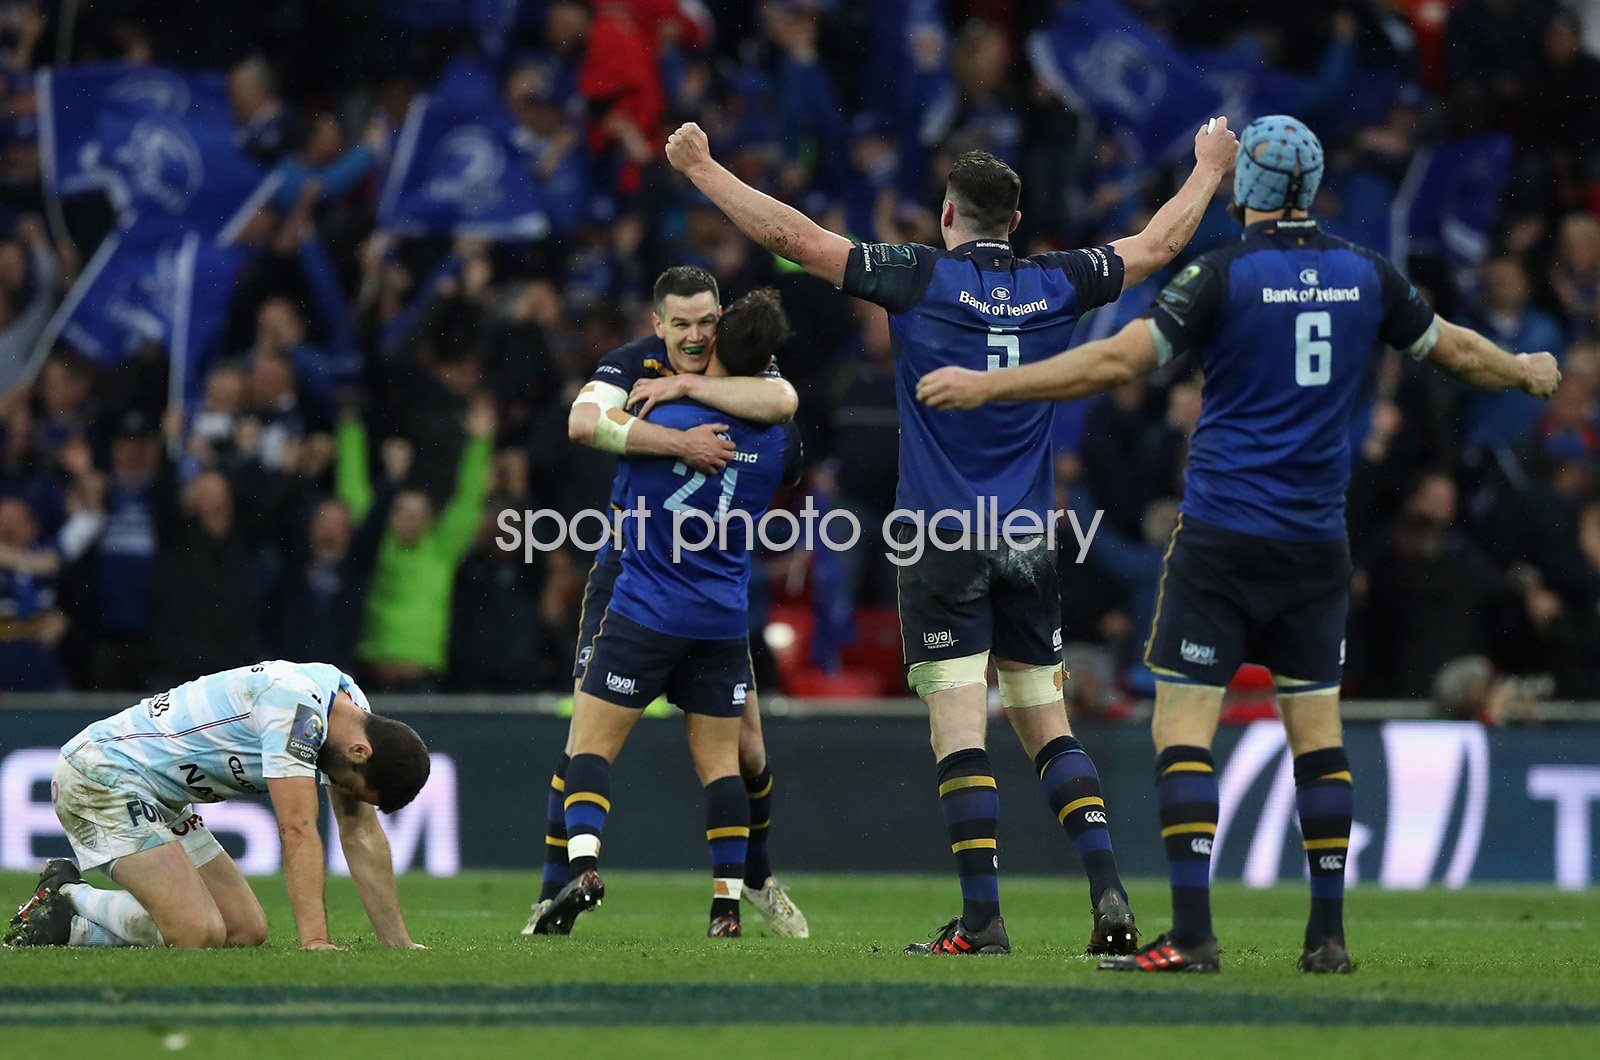 Leinster European Rugby Champions Cup Winning Moment 2018